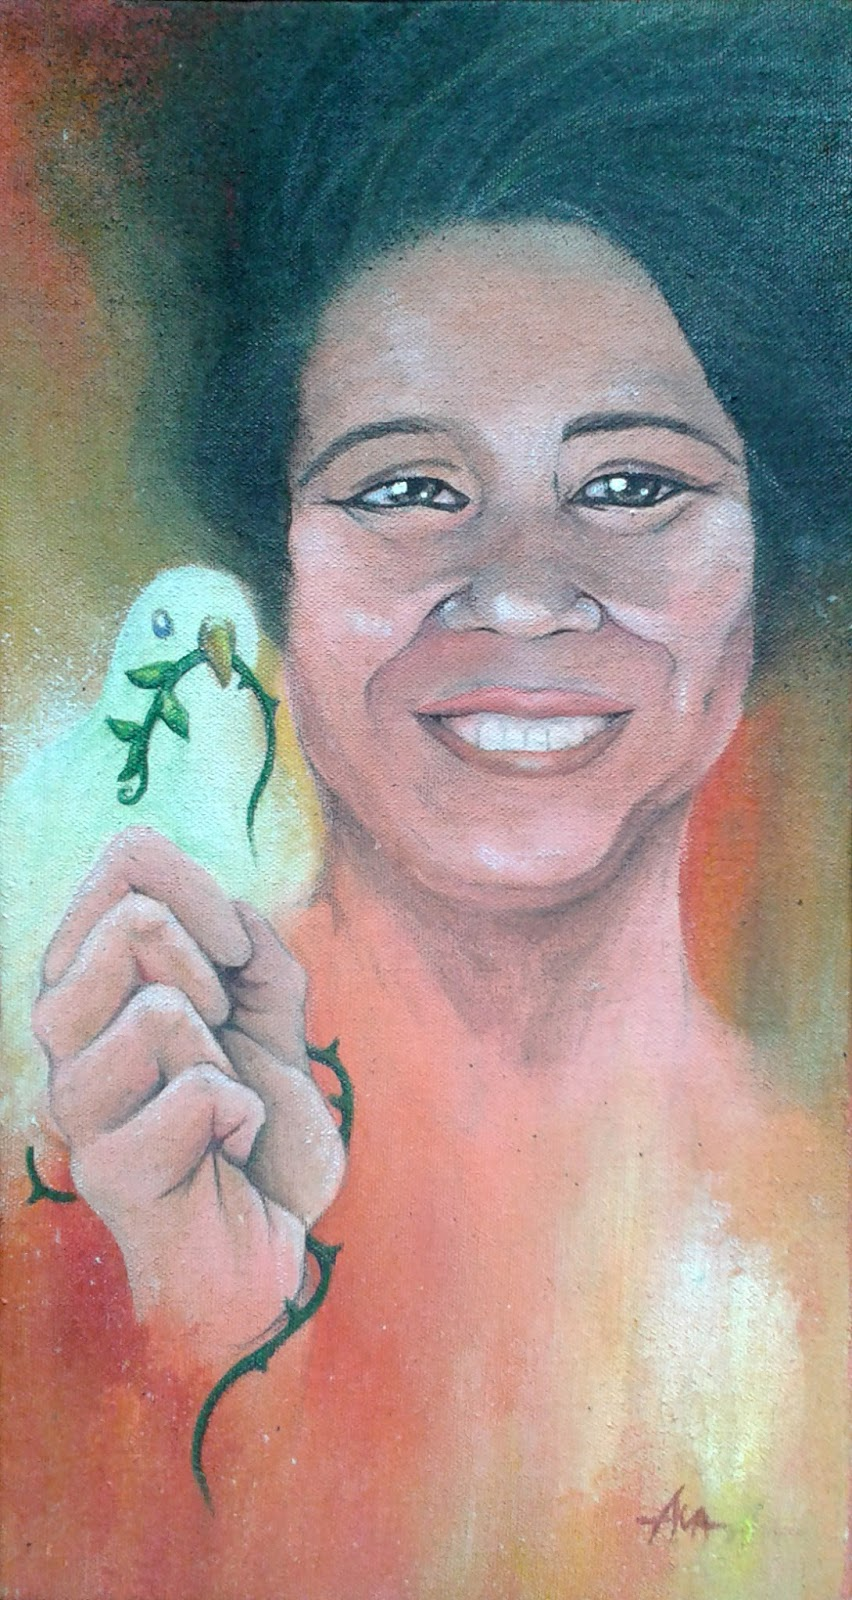 """""""Ang tunay na Evelyn,"""" portrait of Evelyn Legaspi, acrylic on canvass painted by Glenda Maye Abad, and shown at the PortrAYAL art exhibit in Junly 2015. Contributed photo"""